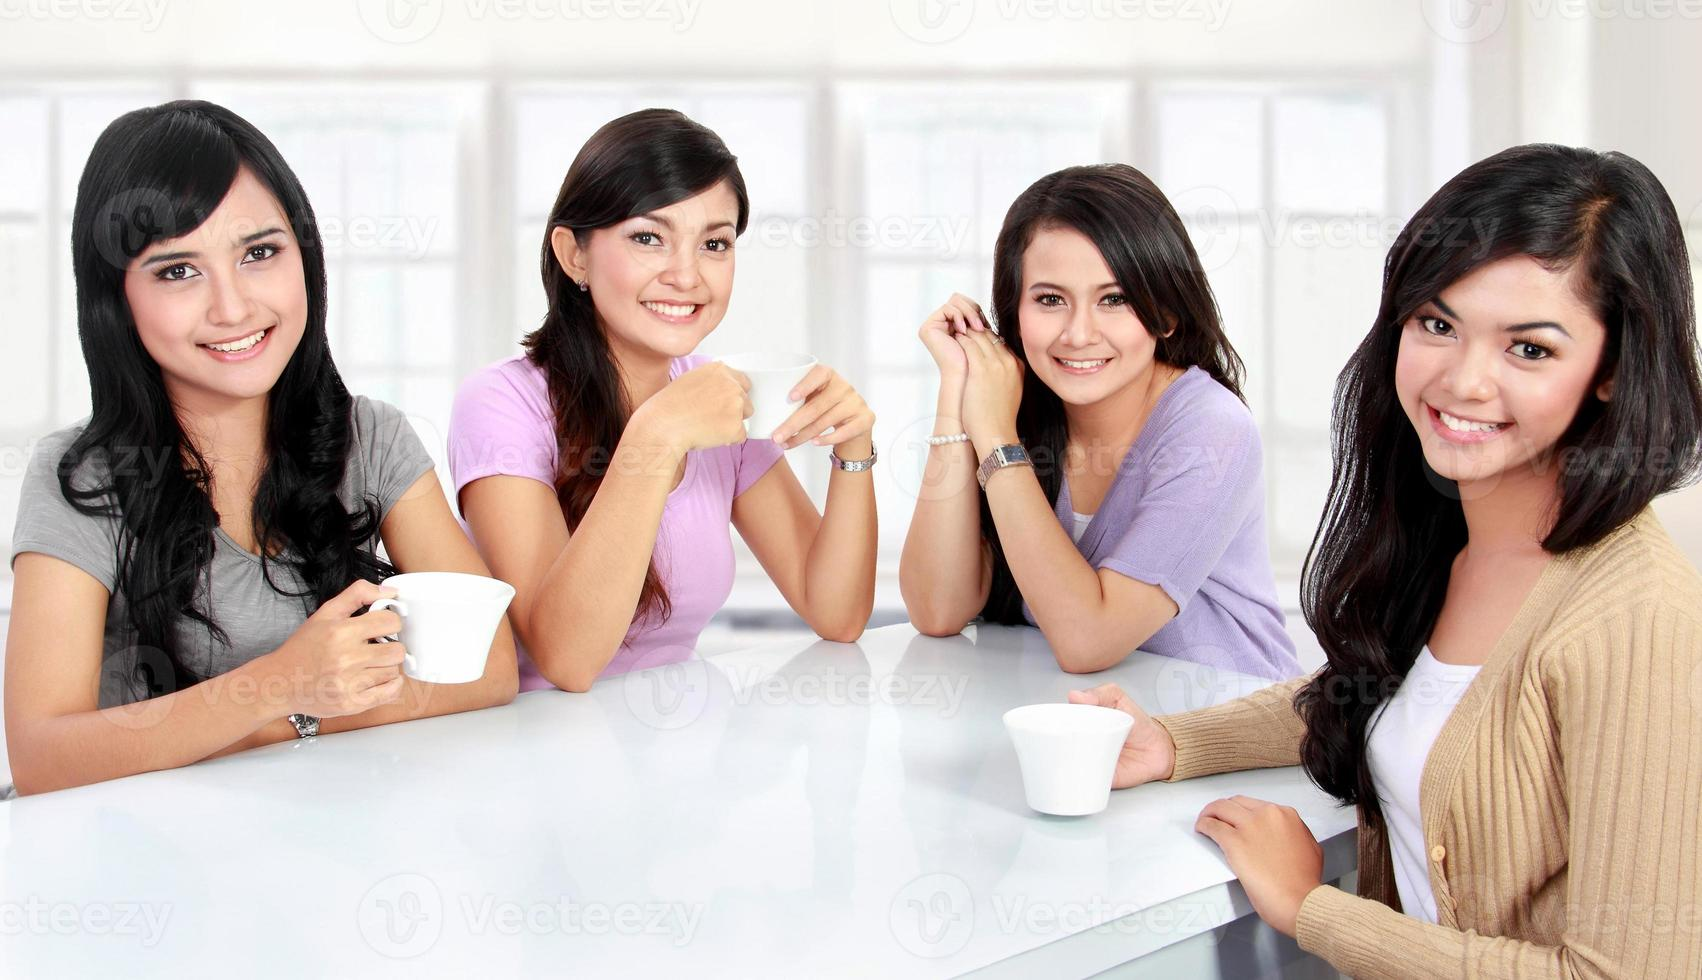 group of women having quality time together photo